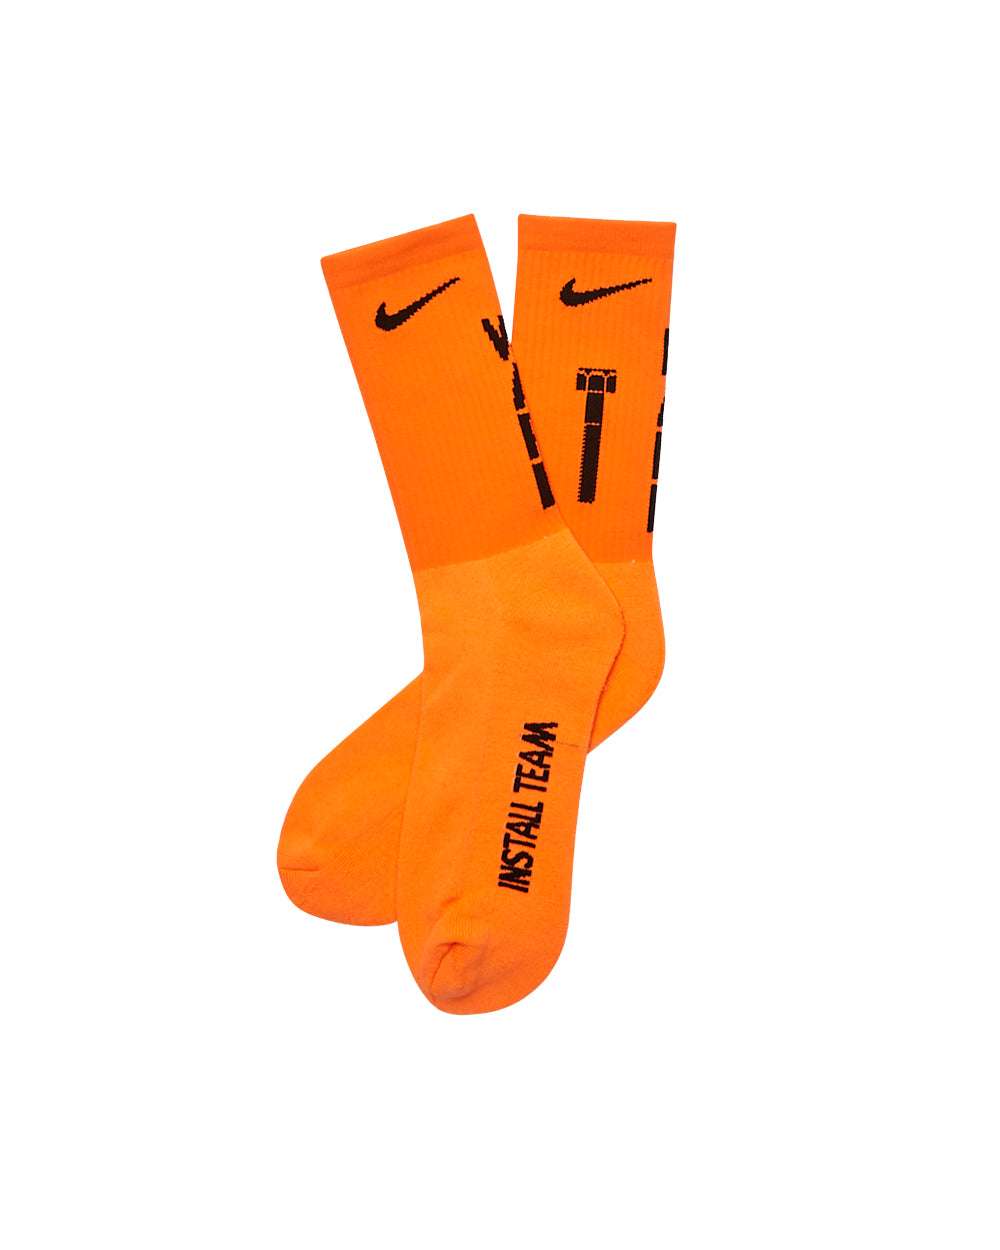 Hardware Socks Safety Orange